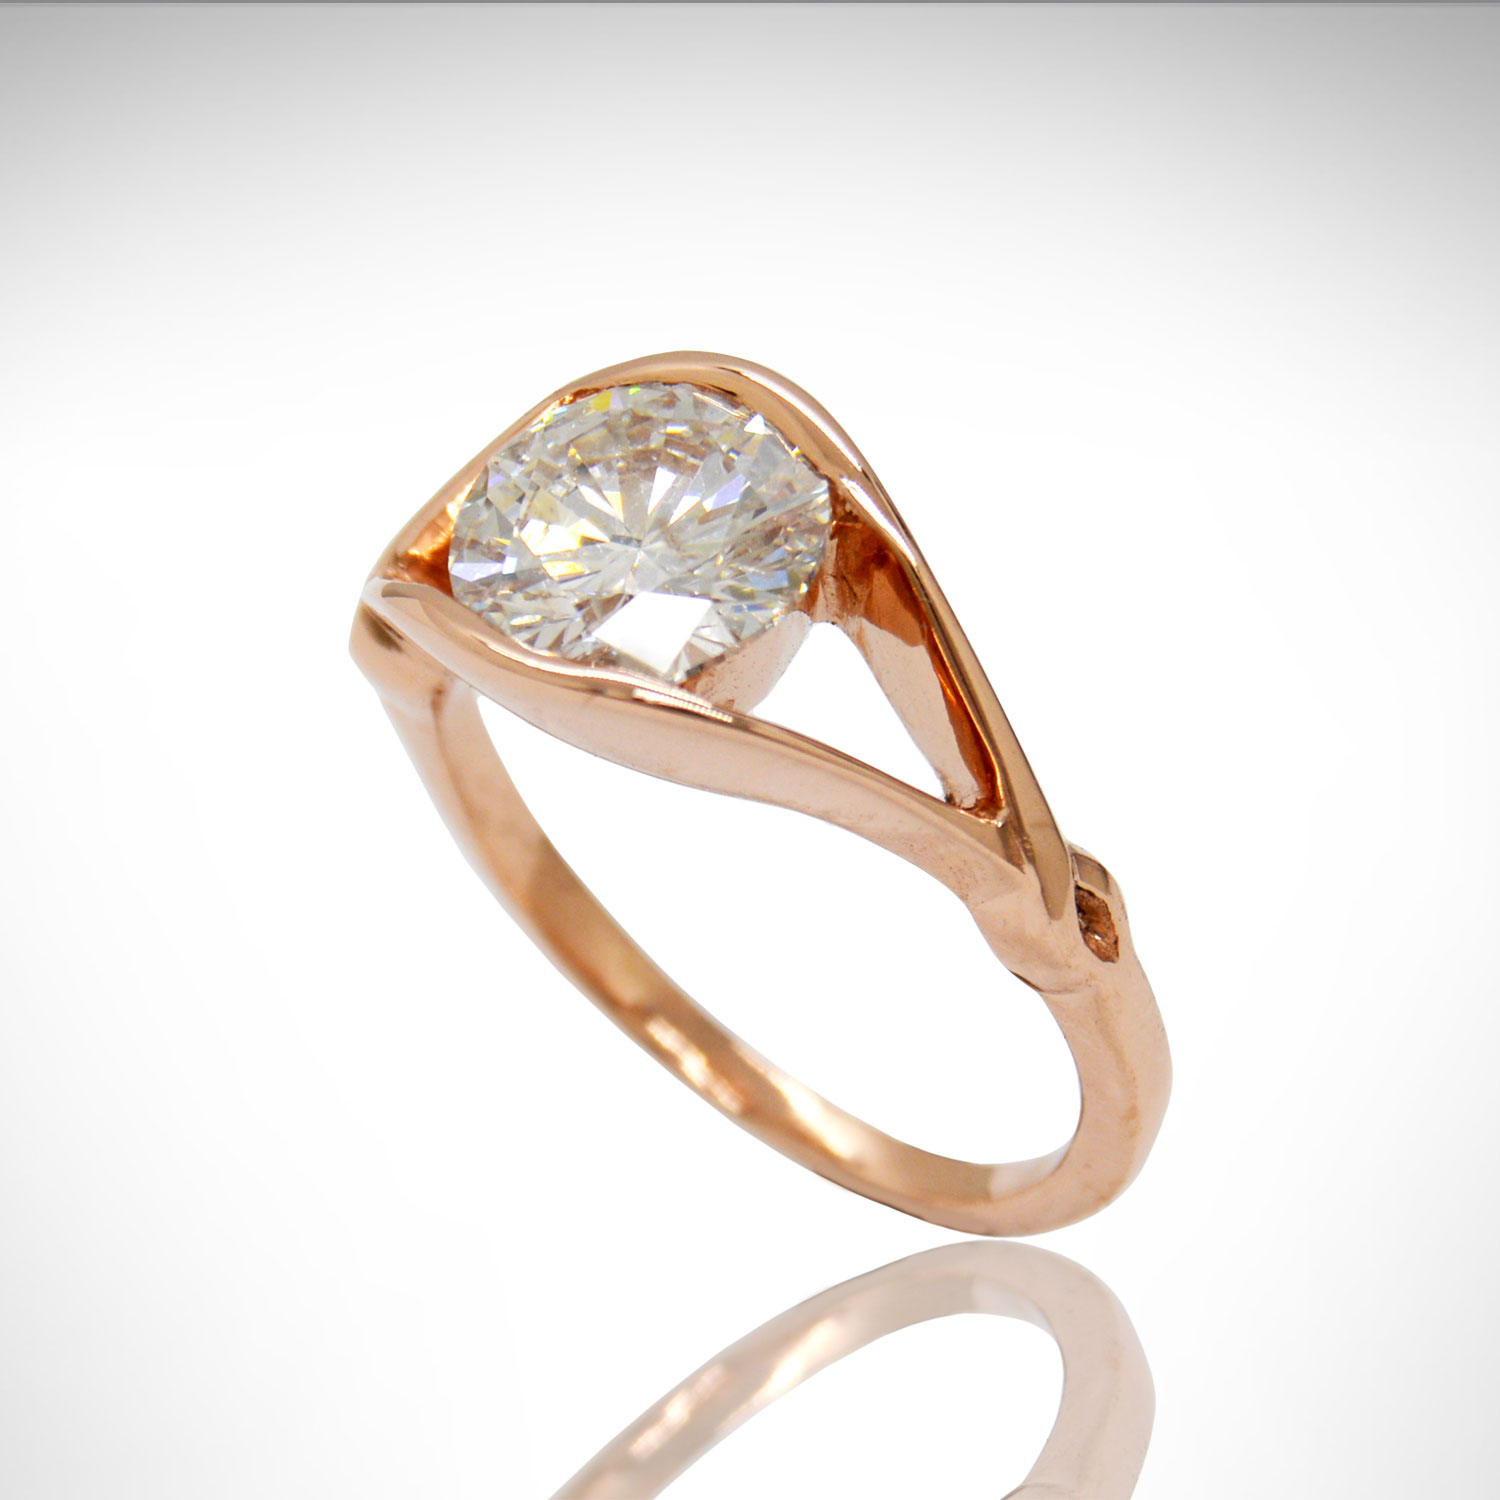 14k Rose gold diamond ring with split shank and twist detail.